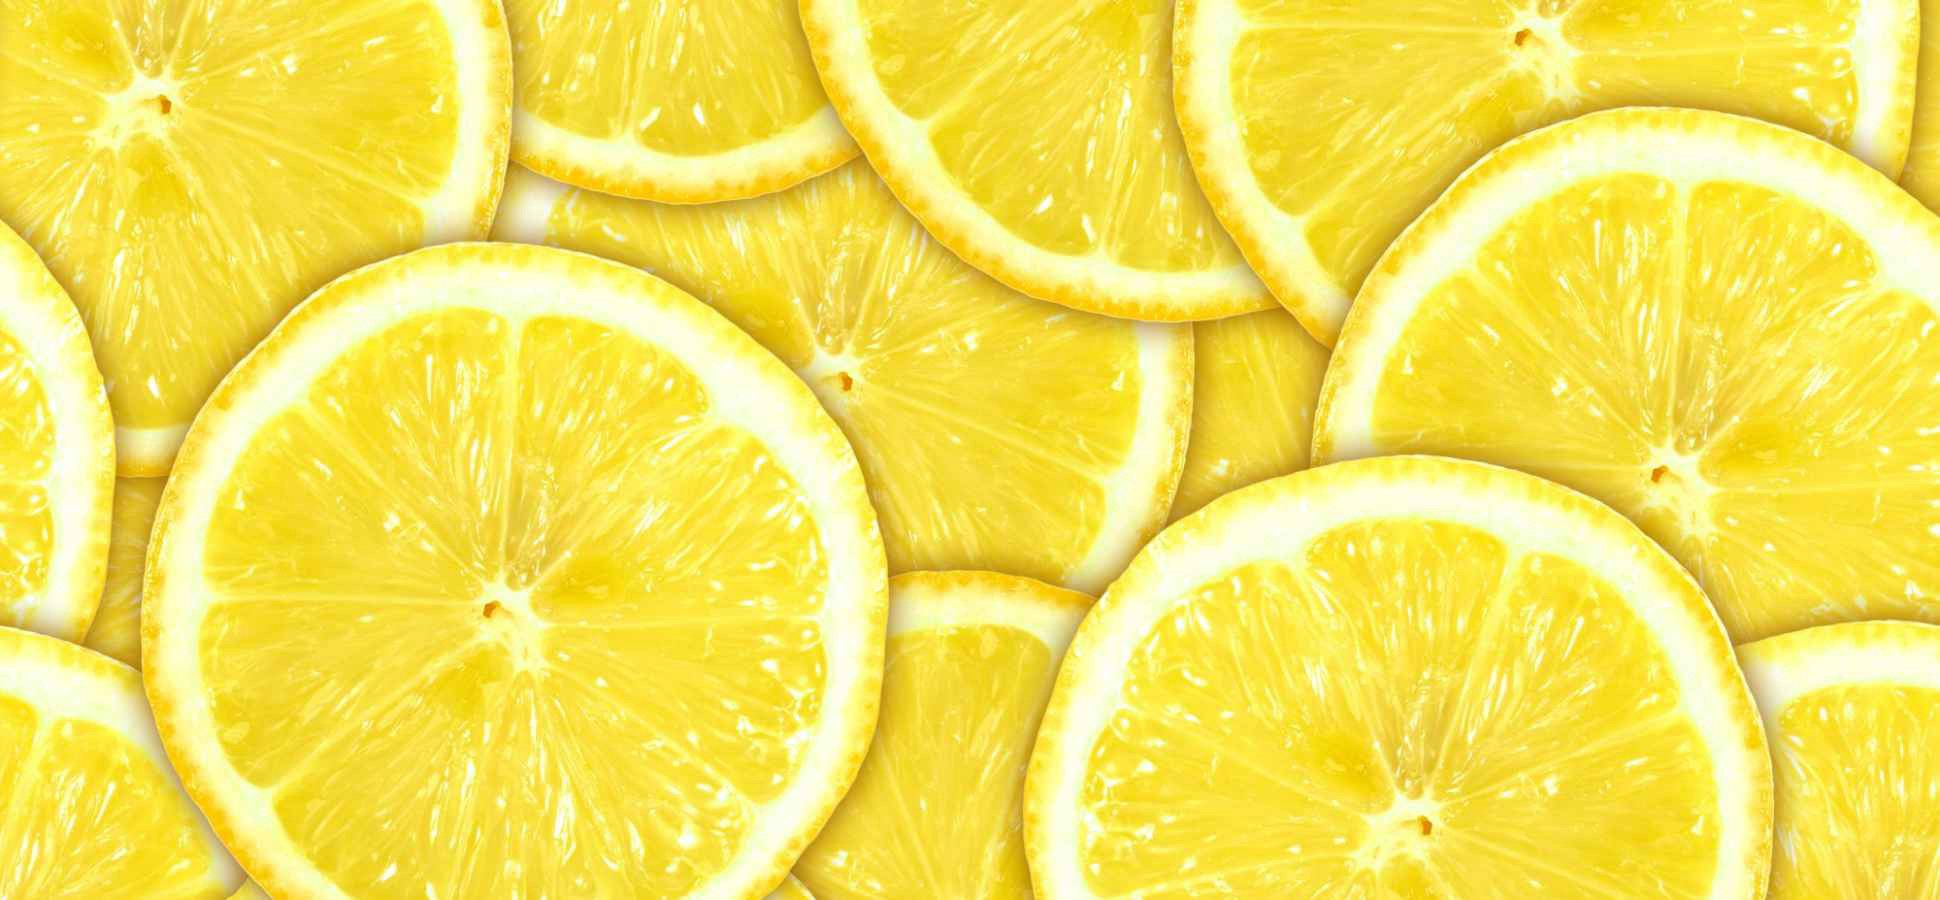 What To Do When Life Gives You Lemons Marketing And Growth Hacking